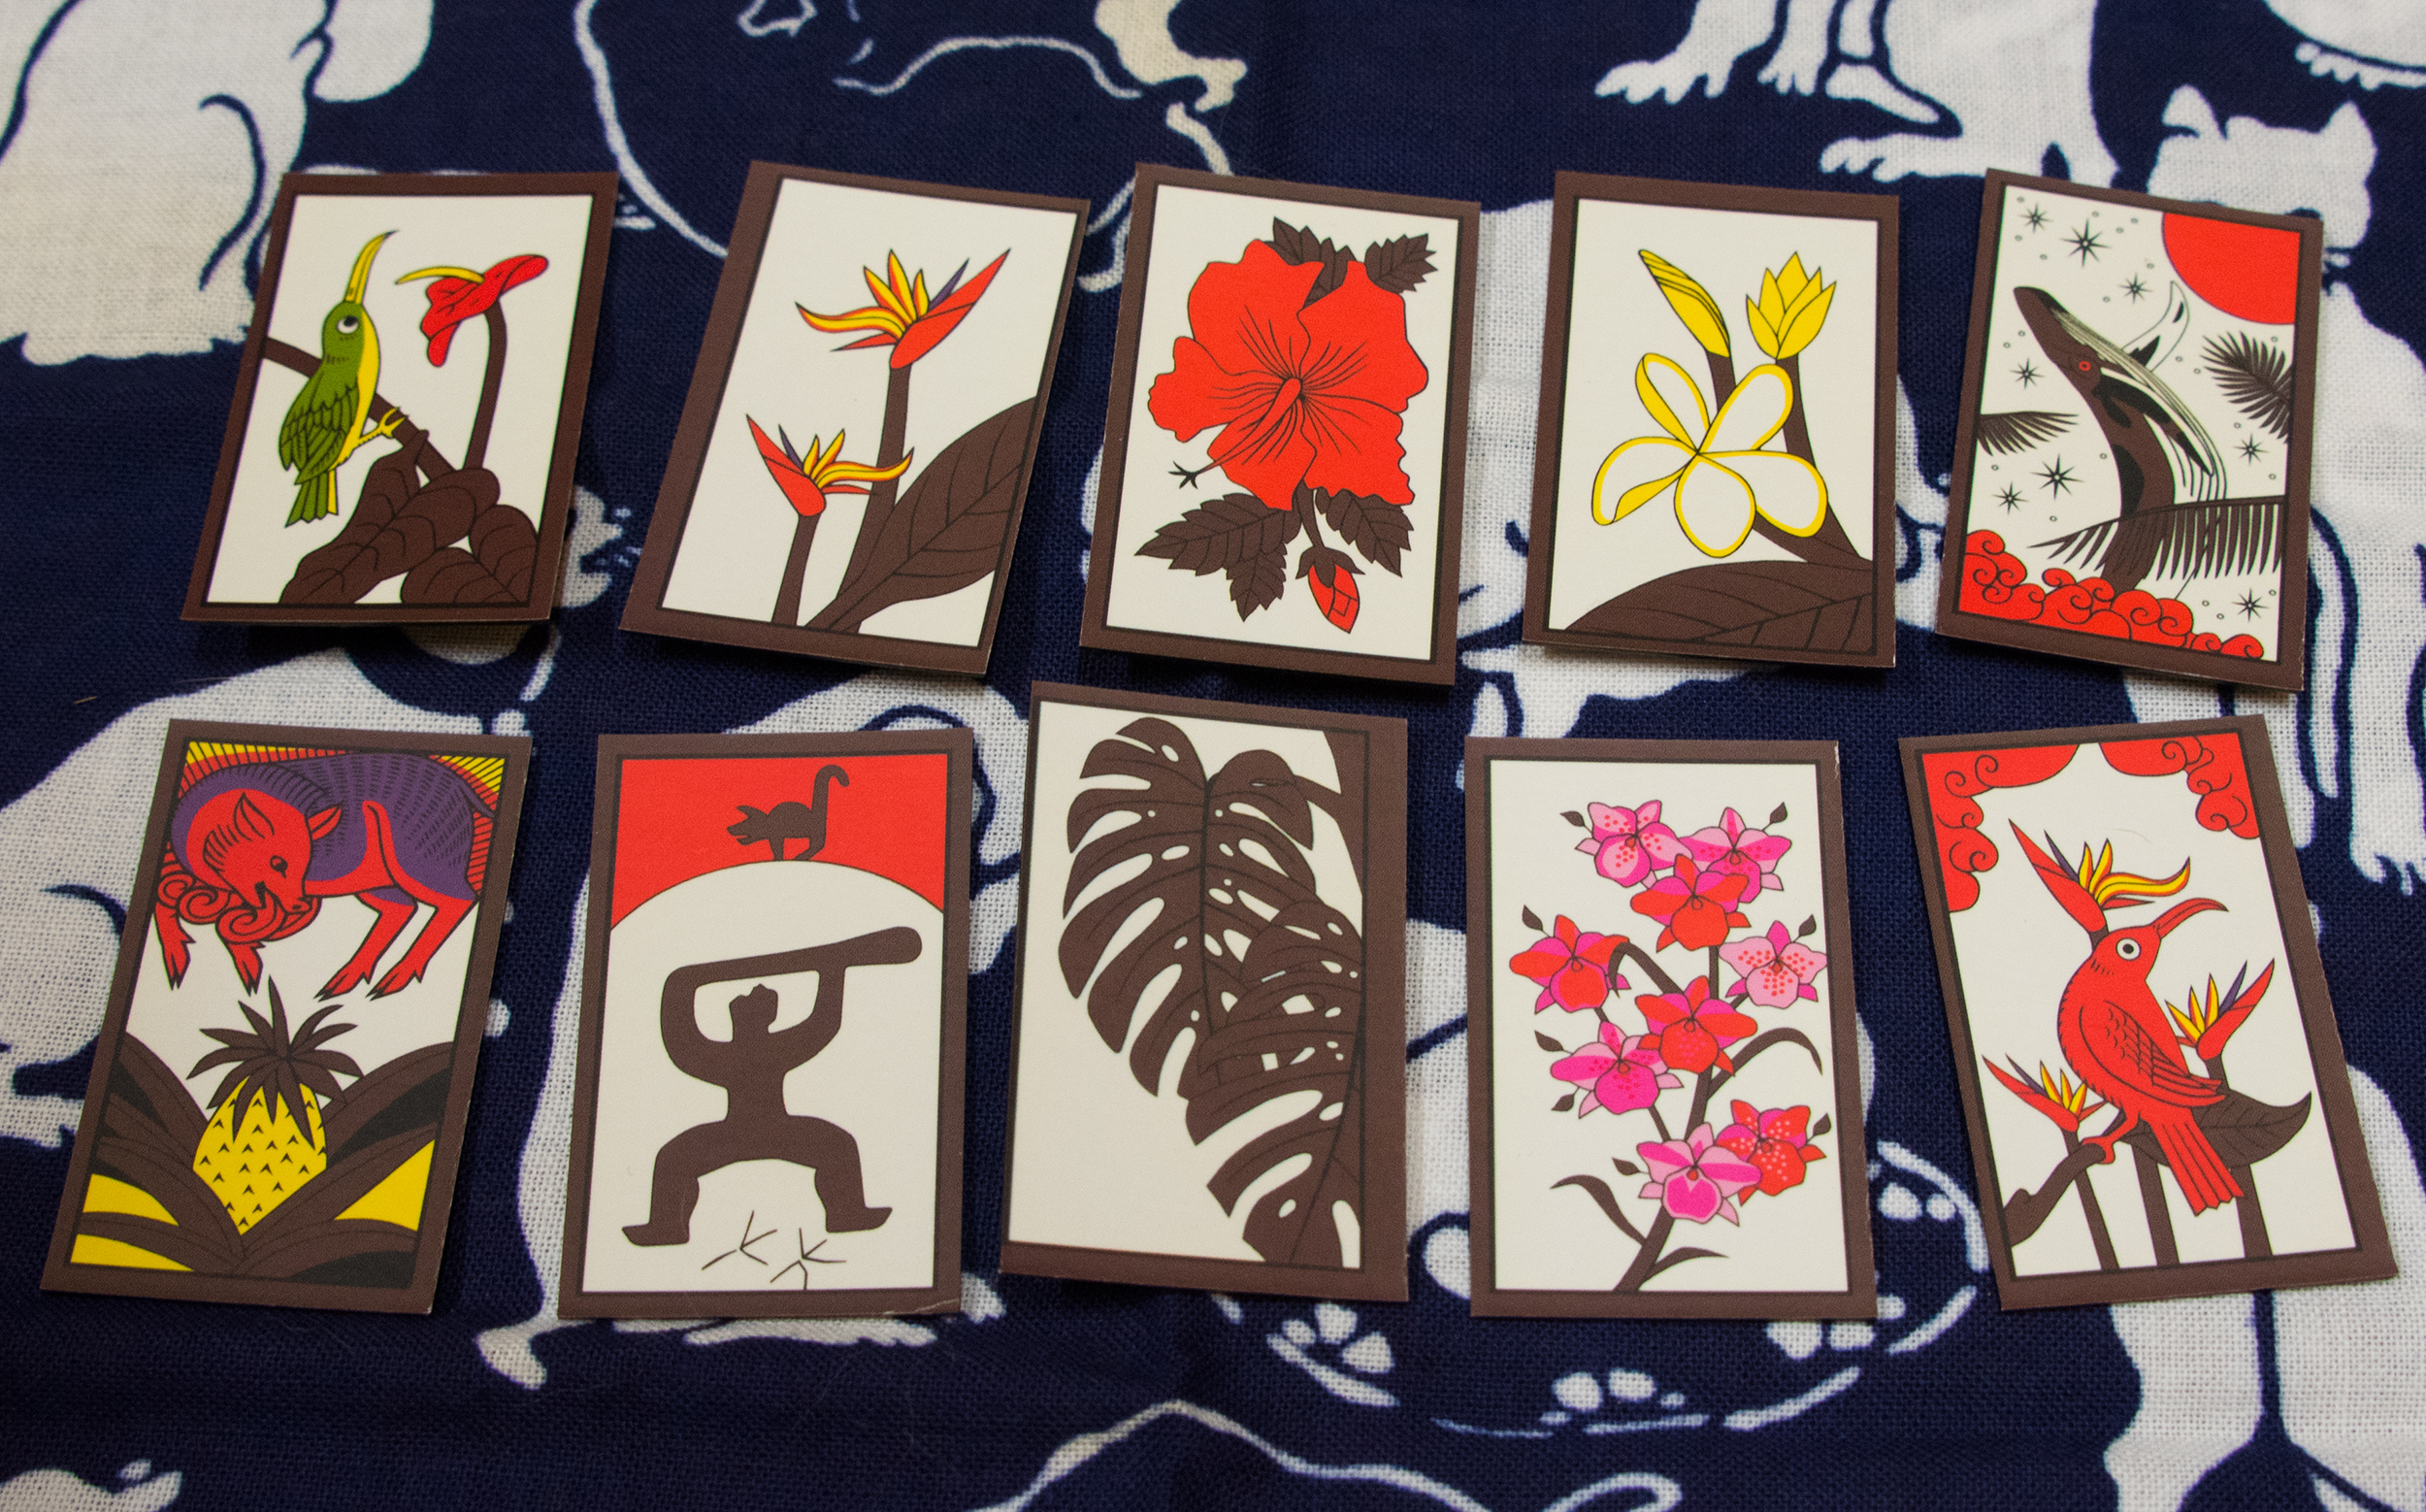 ハワイの花札・Hawaii Flower Card Game HANAPUA